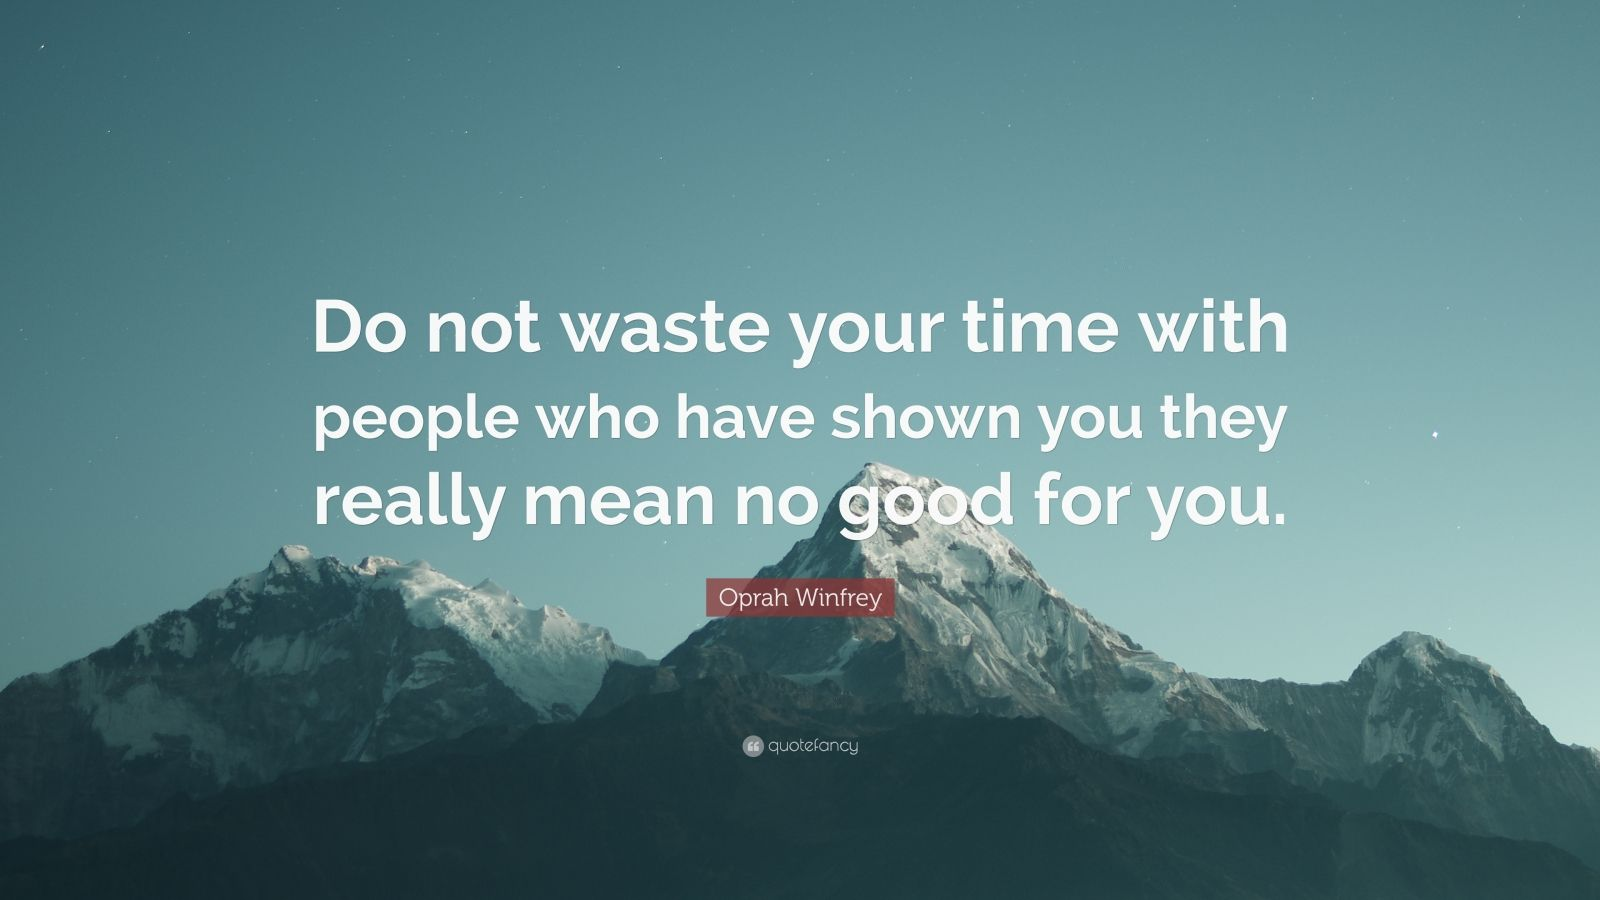 """Oprah Winfrey Quote: """"Do not waste your time with people who have shown you they really mean no good for you."""""""